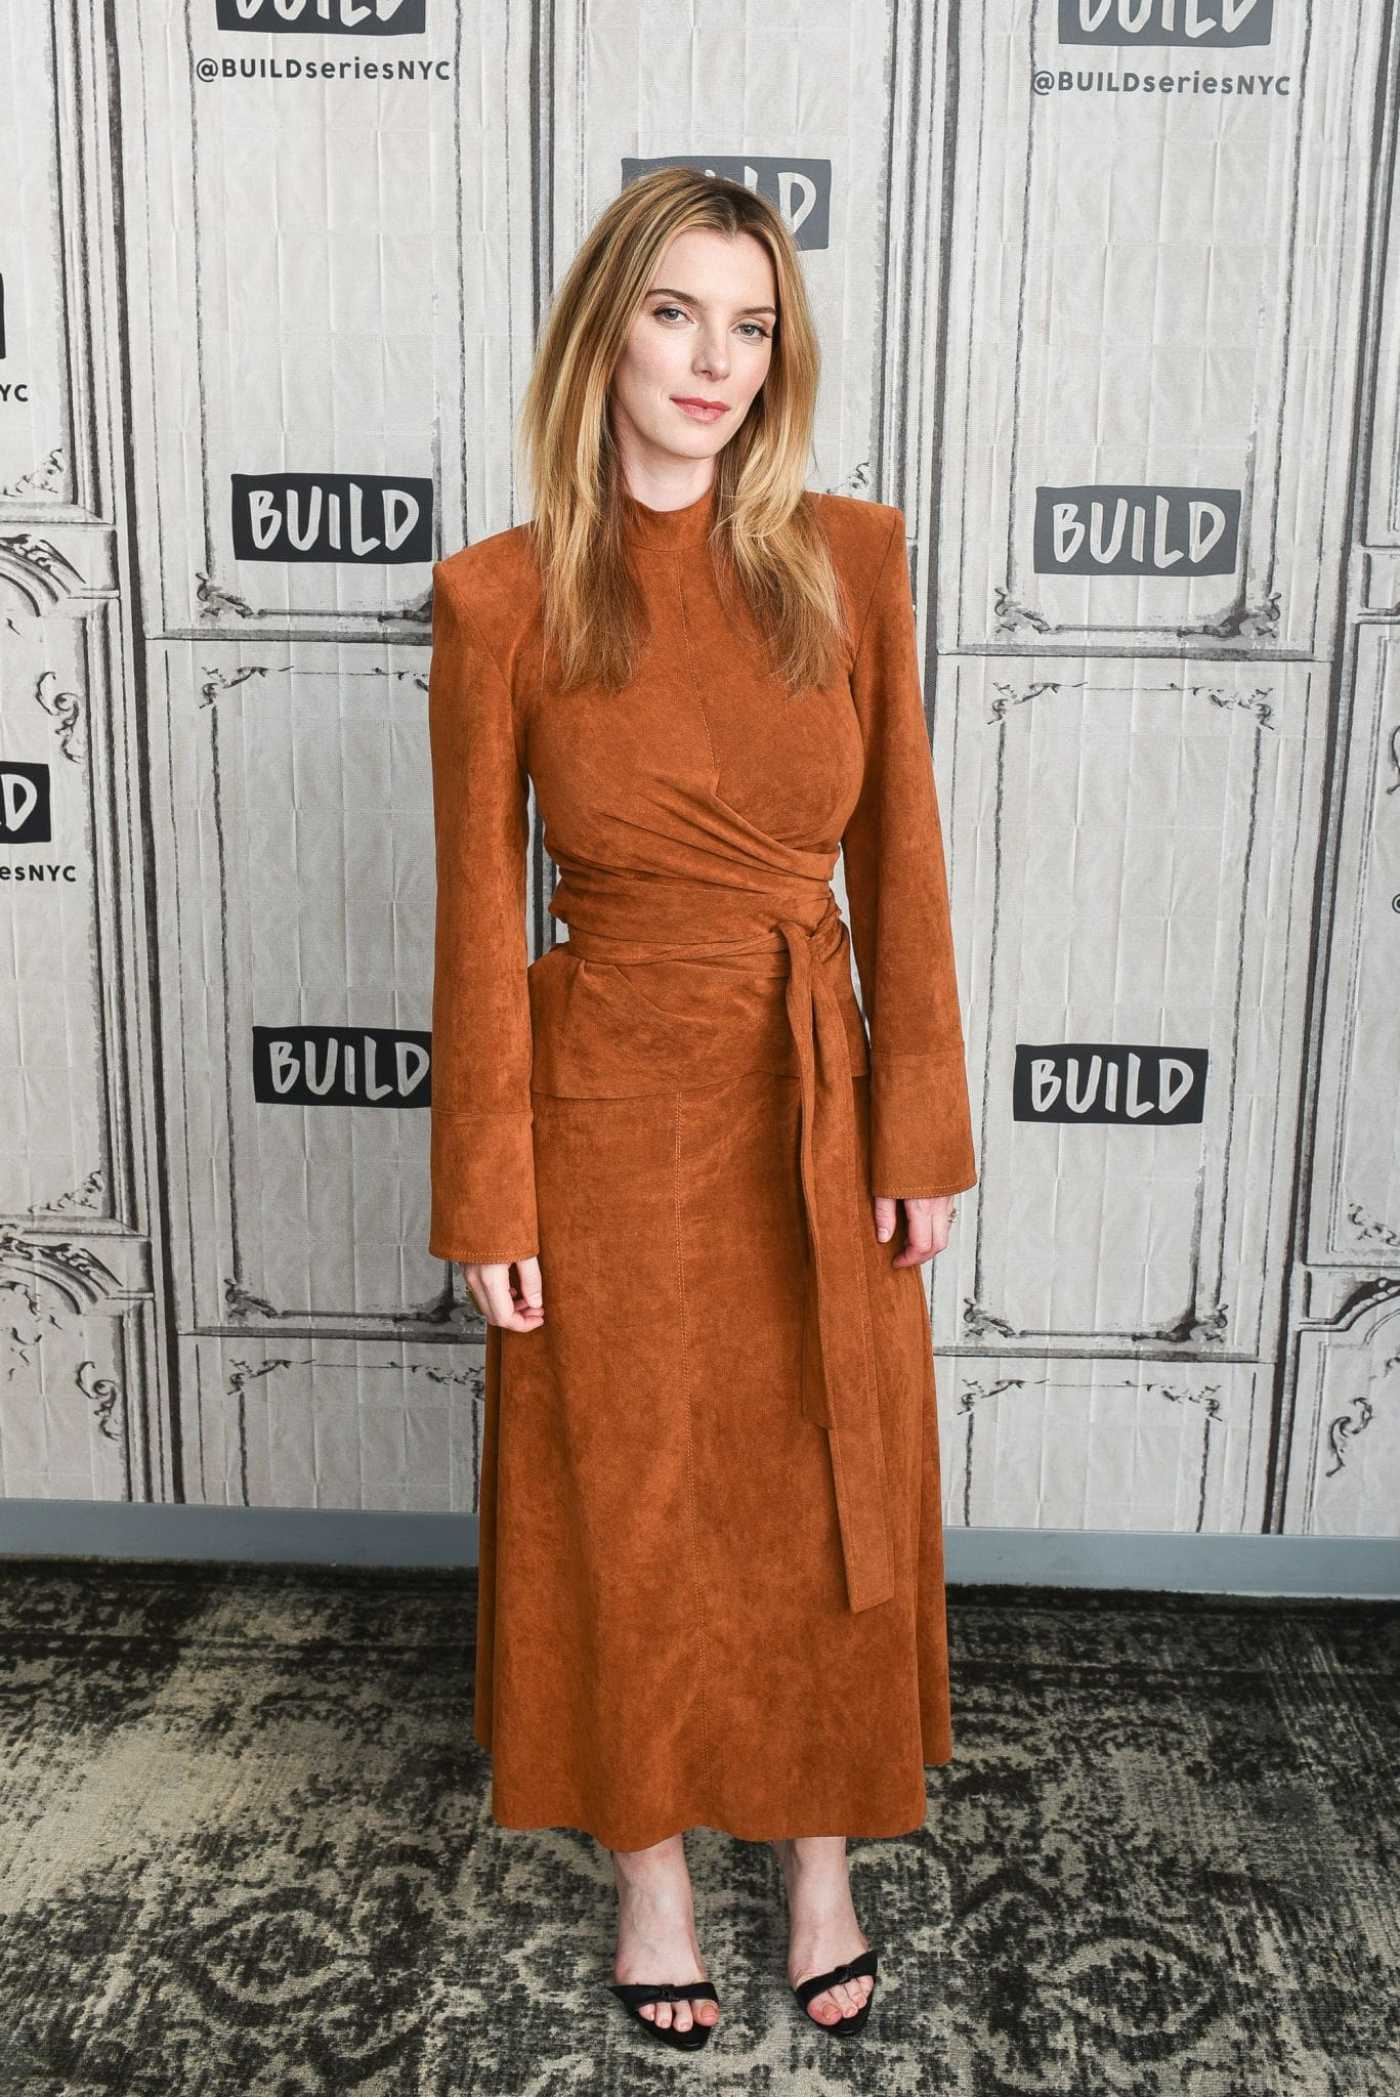 Betty Gilpin Attends AOL Build Series in New York 08/13/2019